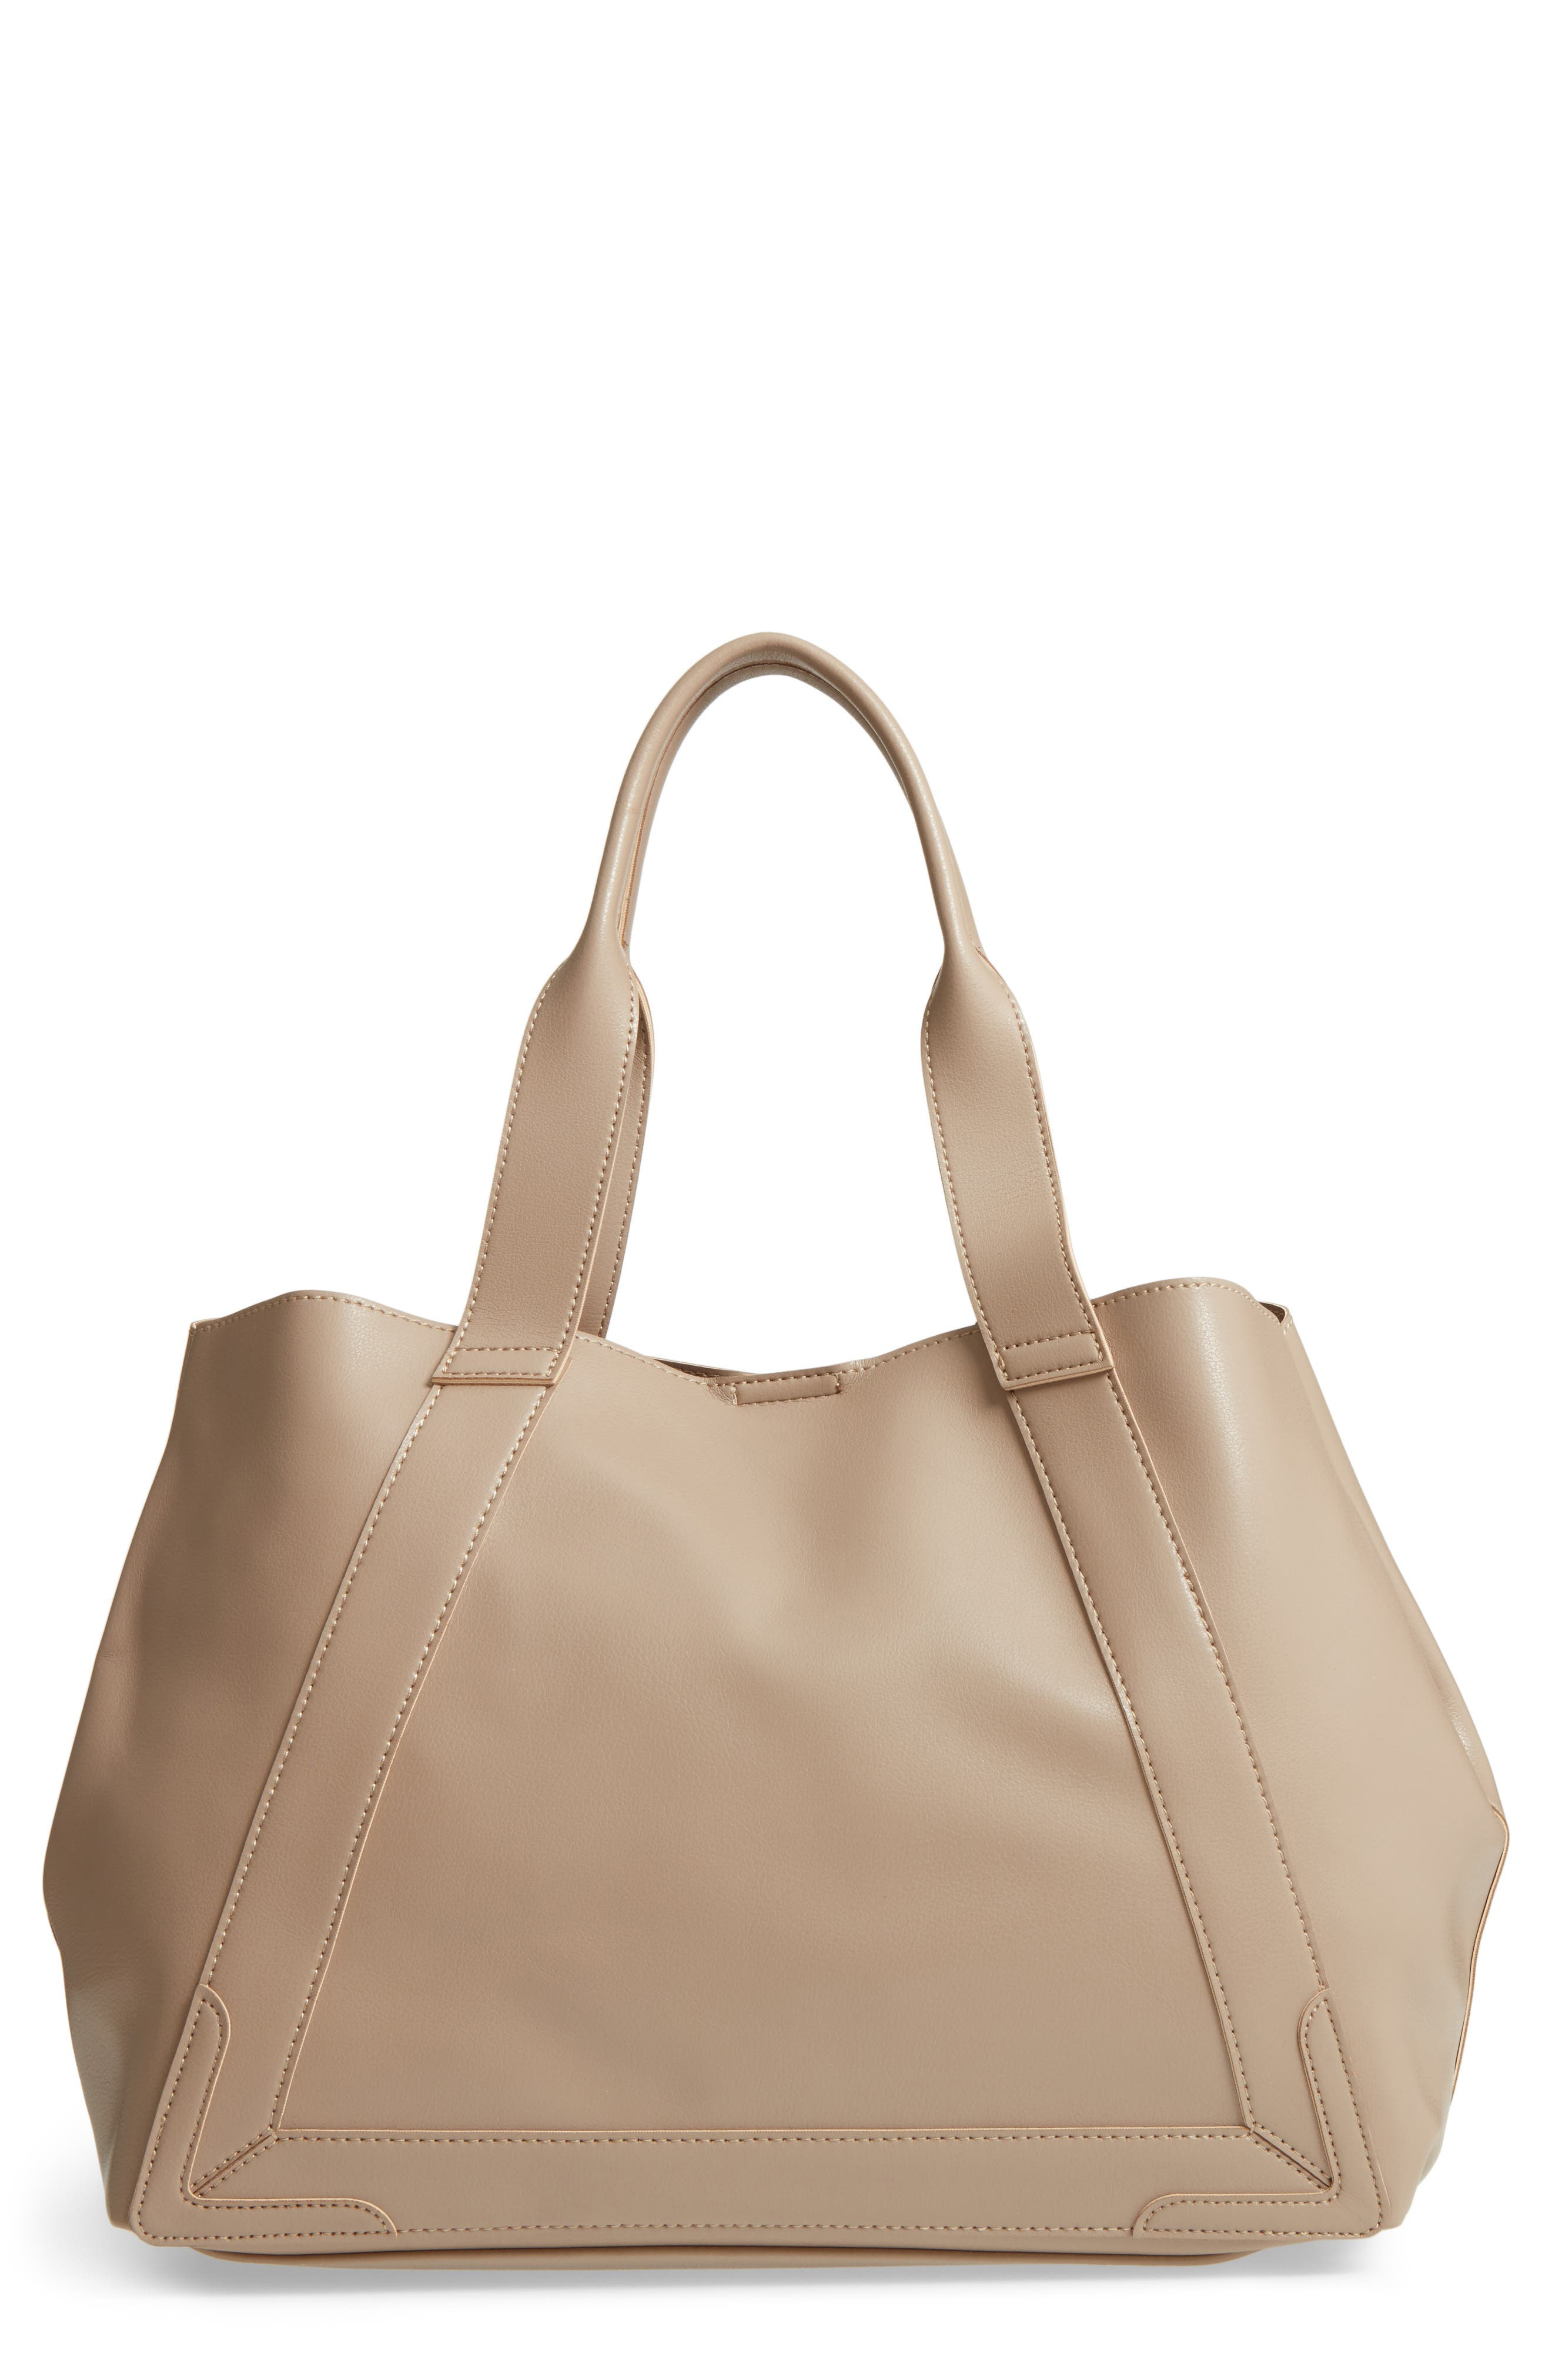 Decklan Faux Leather Tote,                         Main,                         color, 250